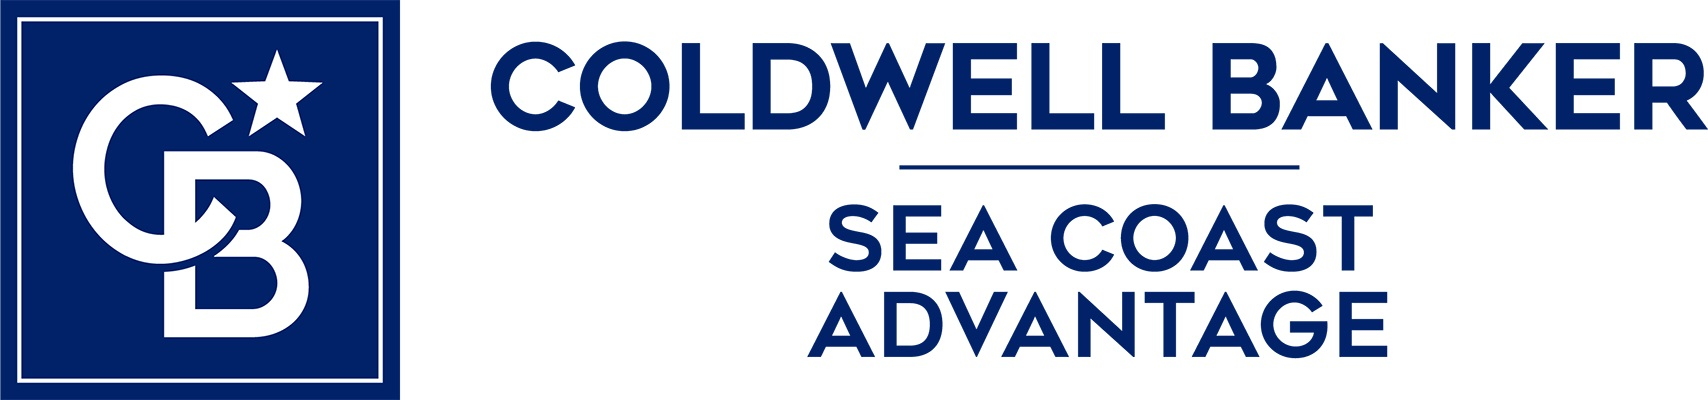 Pat Workman - Coldwell Banker Sea Coast Advantage Realty